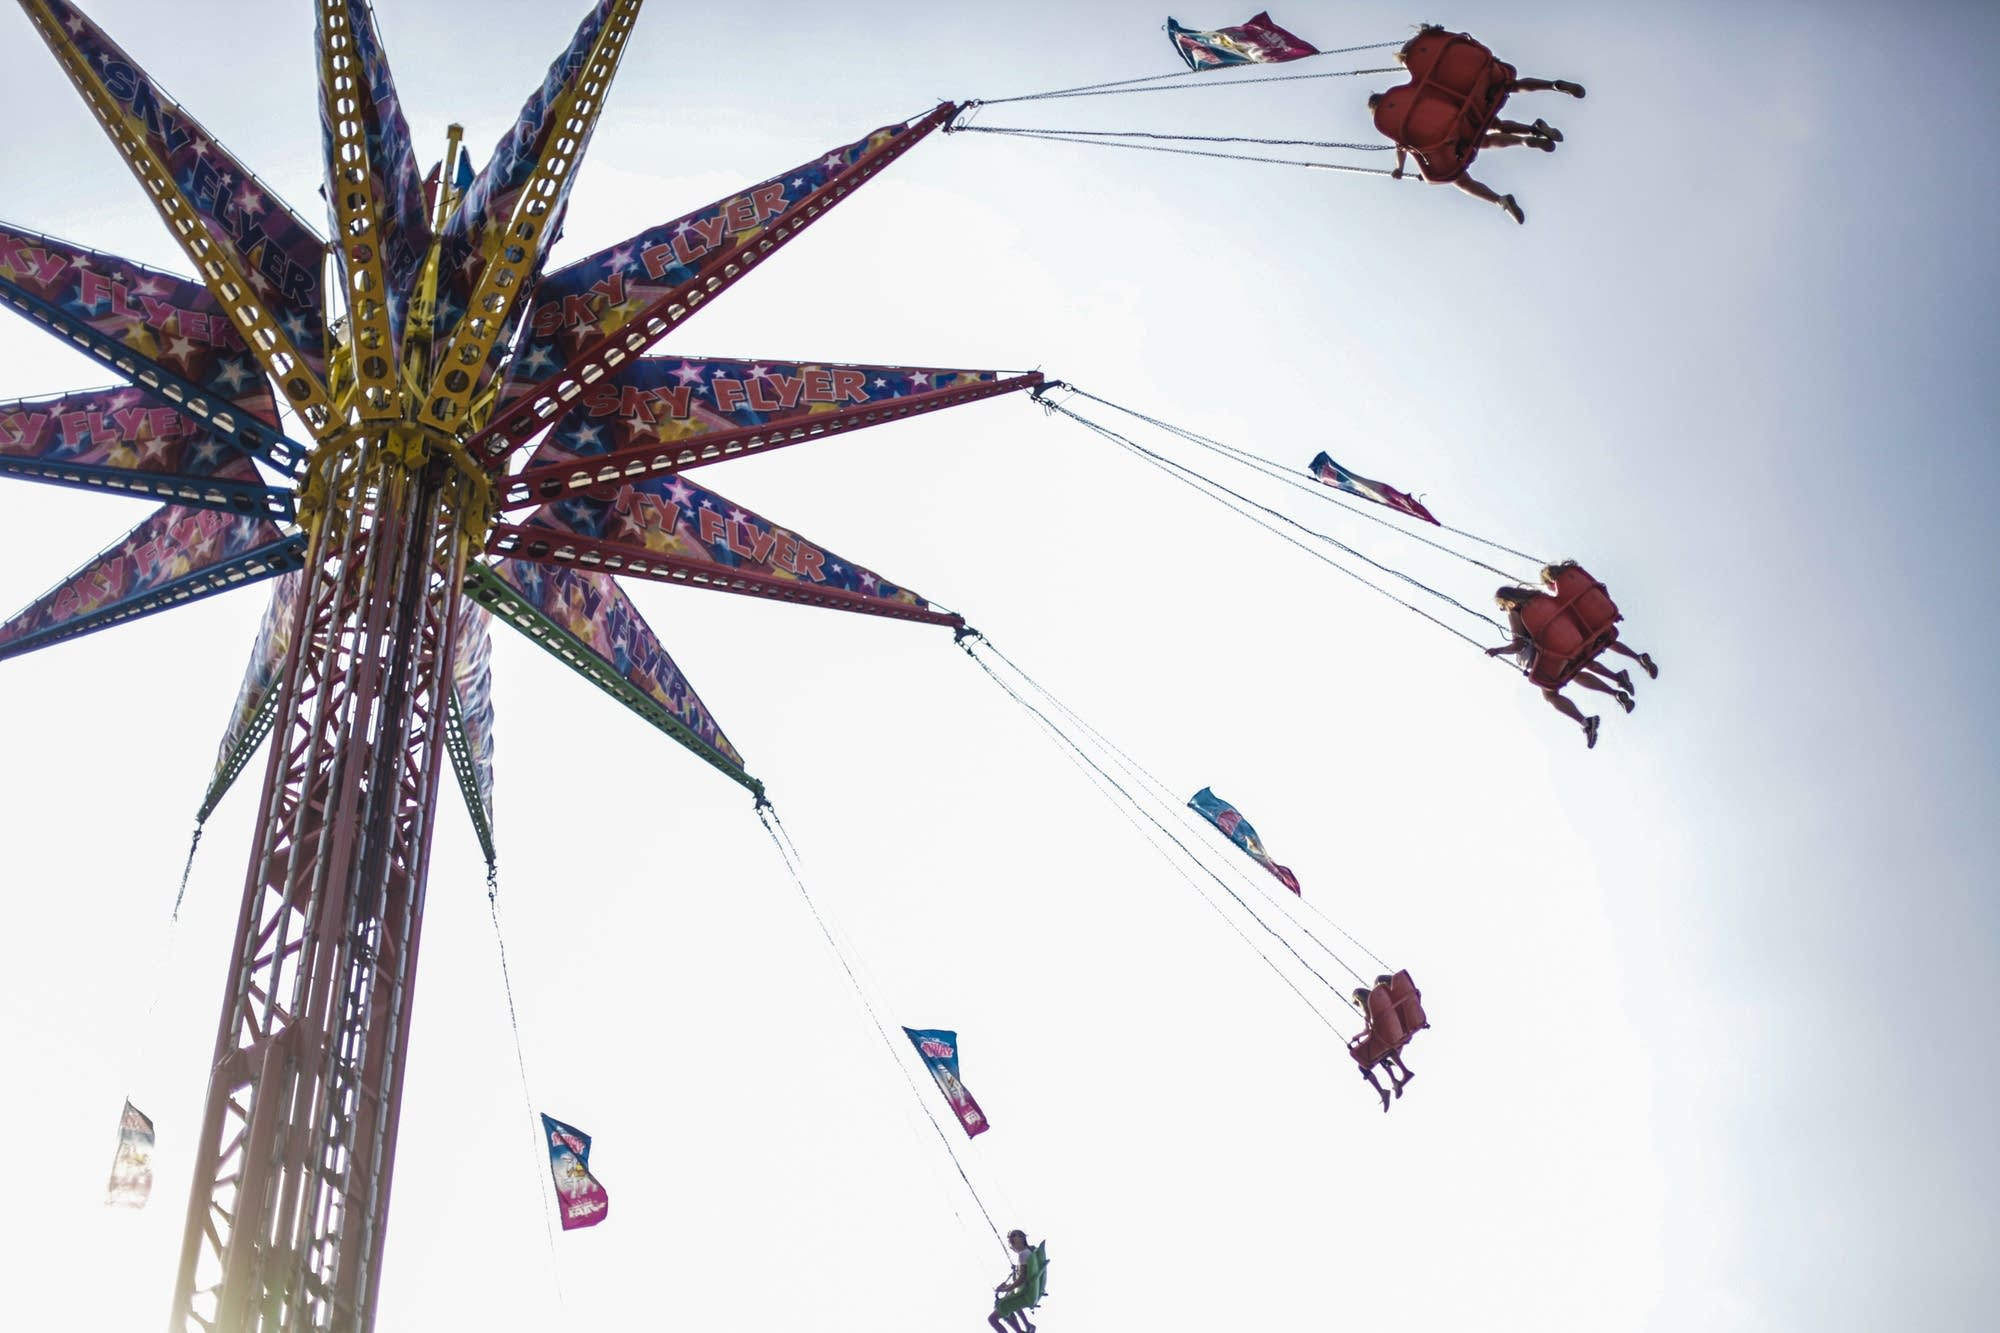 The swings are a classic State Fair attraction.